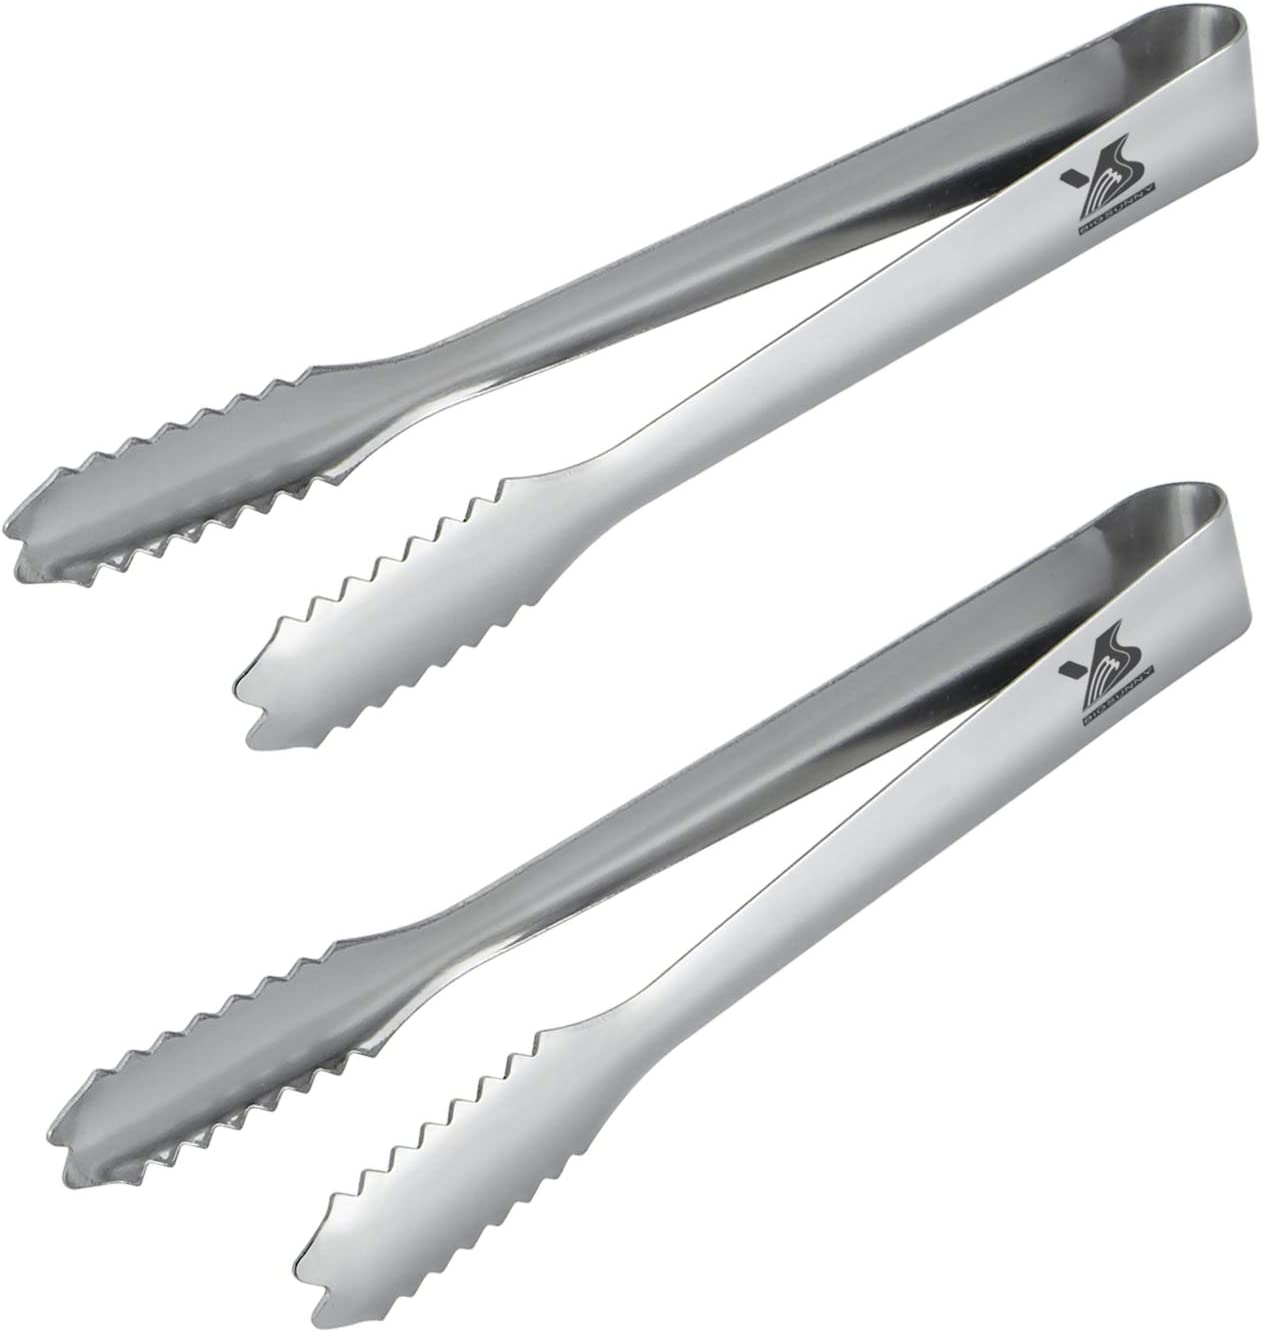 BIGSUNNY Stainless Steel Ice Tongs Set of 2 7inch Serving Tongs